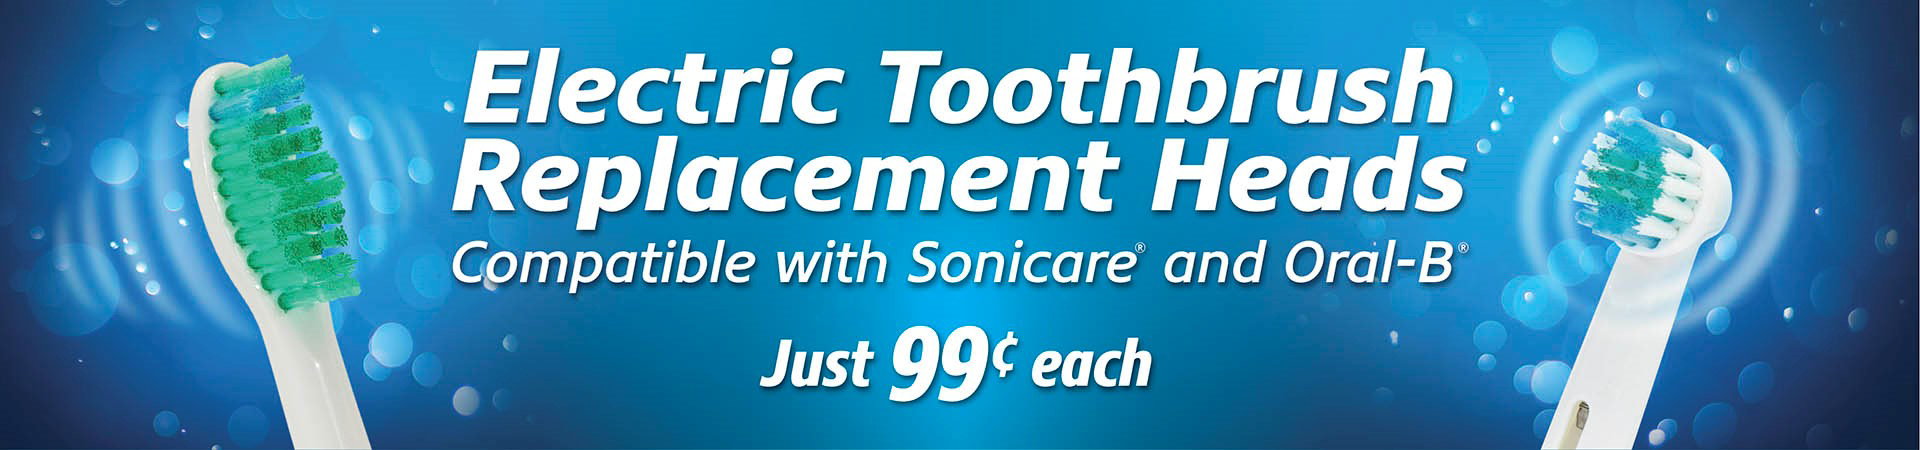 generic electric toothbrush replacement heads